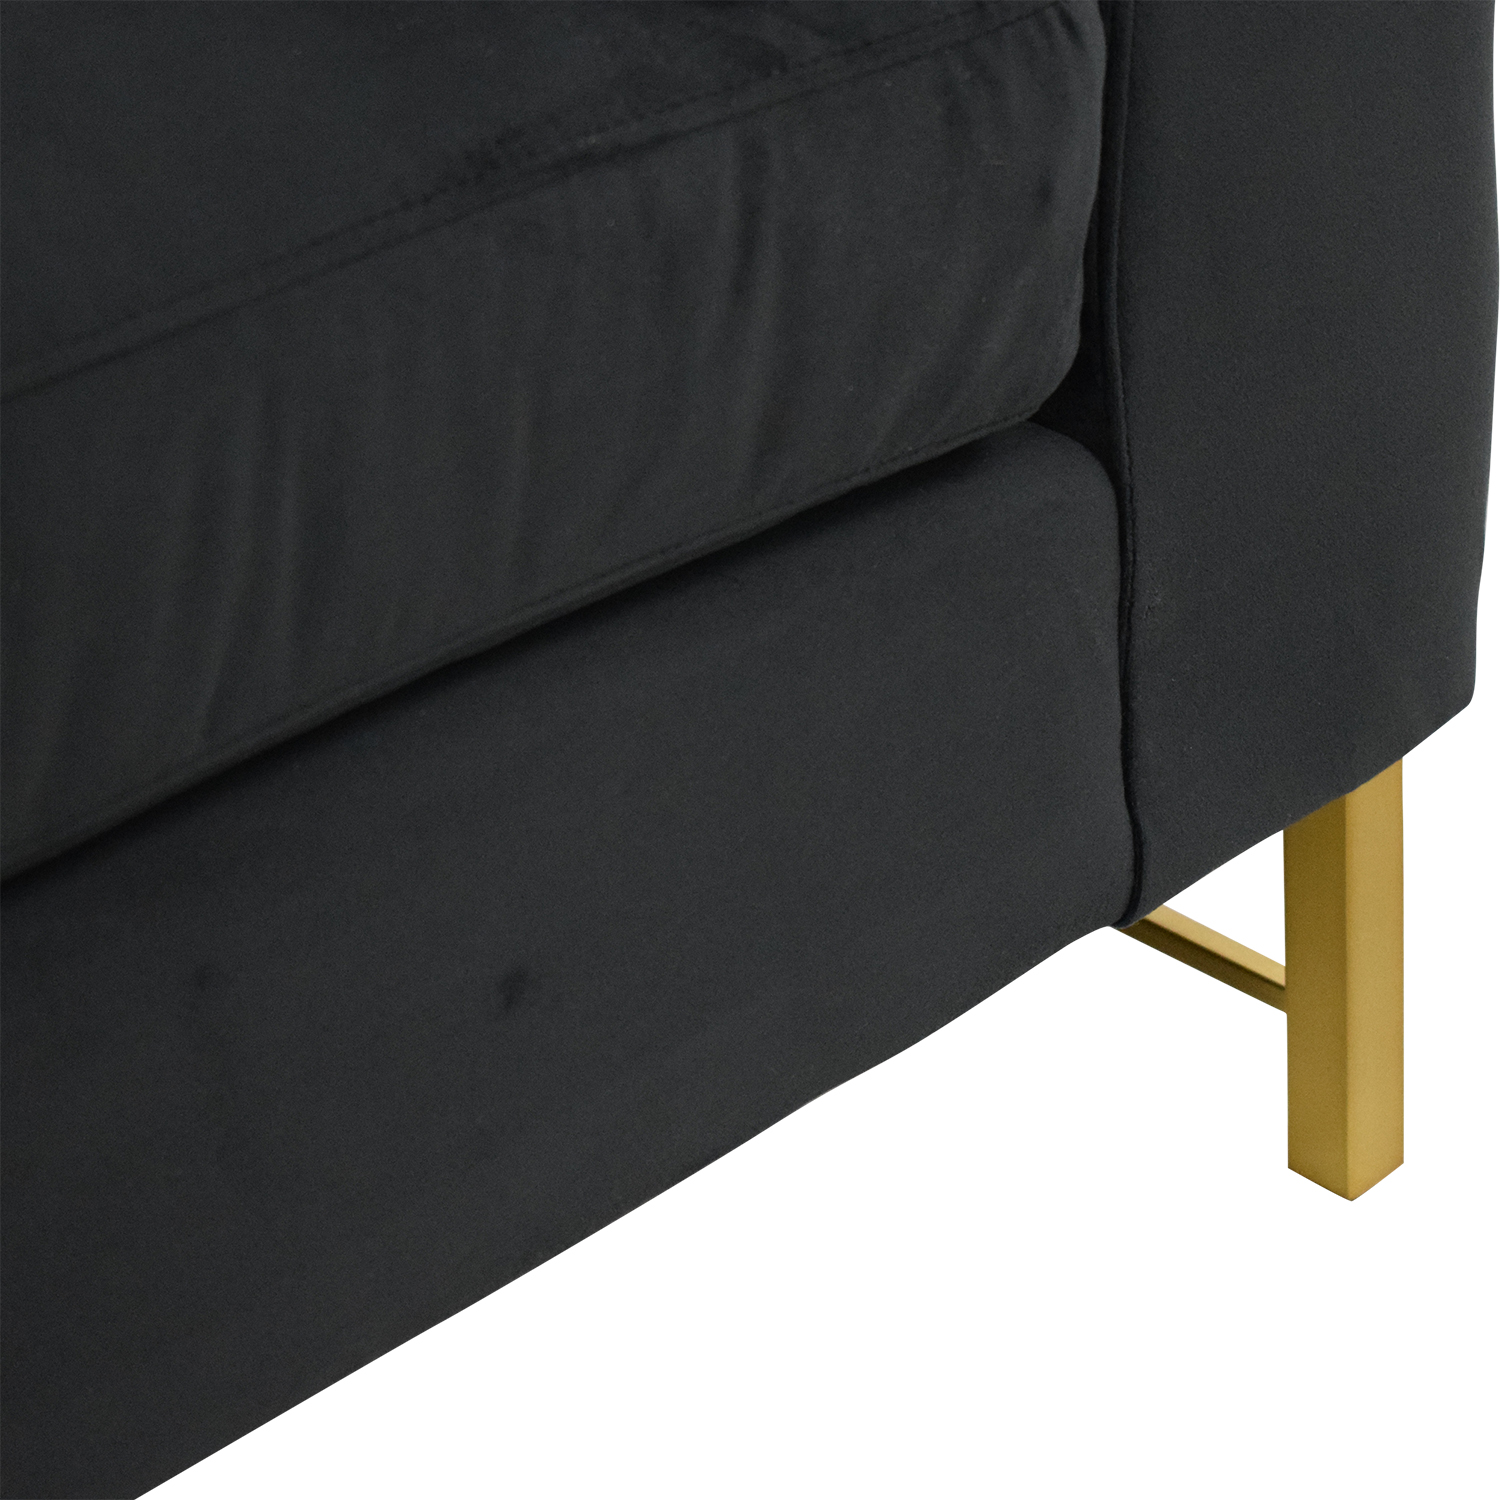 Crate & Barrel Crate & Barrel Tyson Daybed with Brass Base Chaises